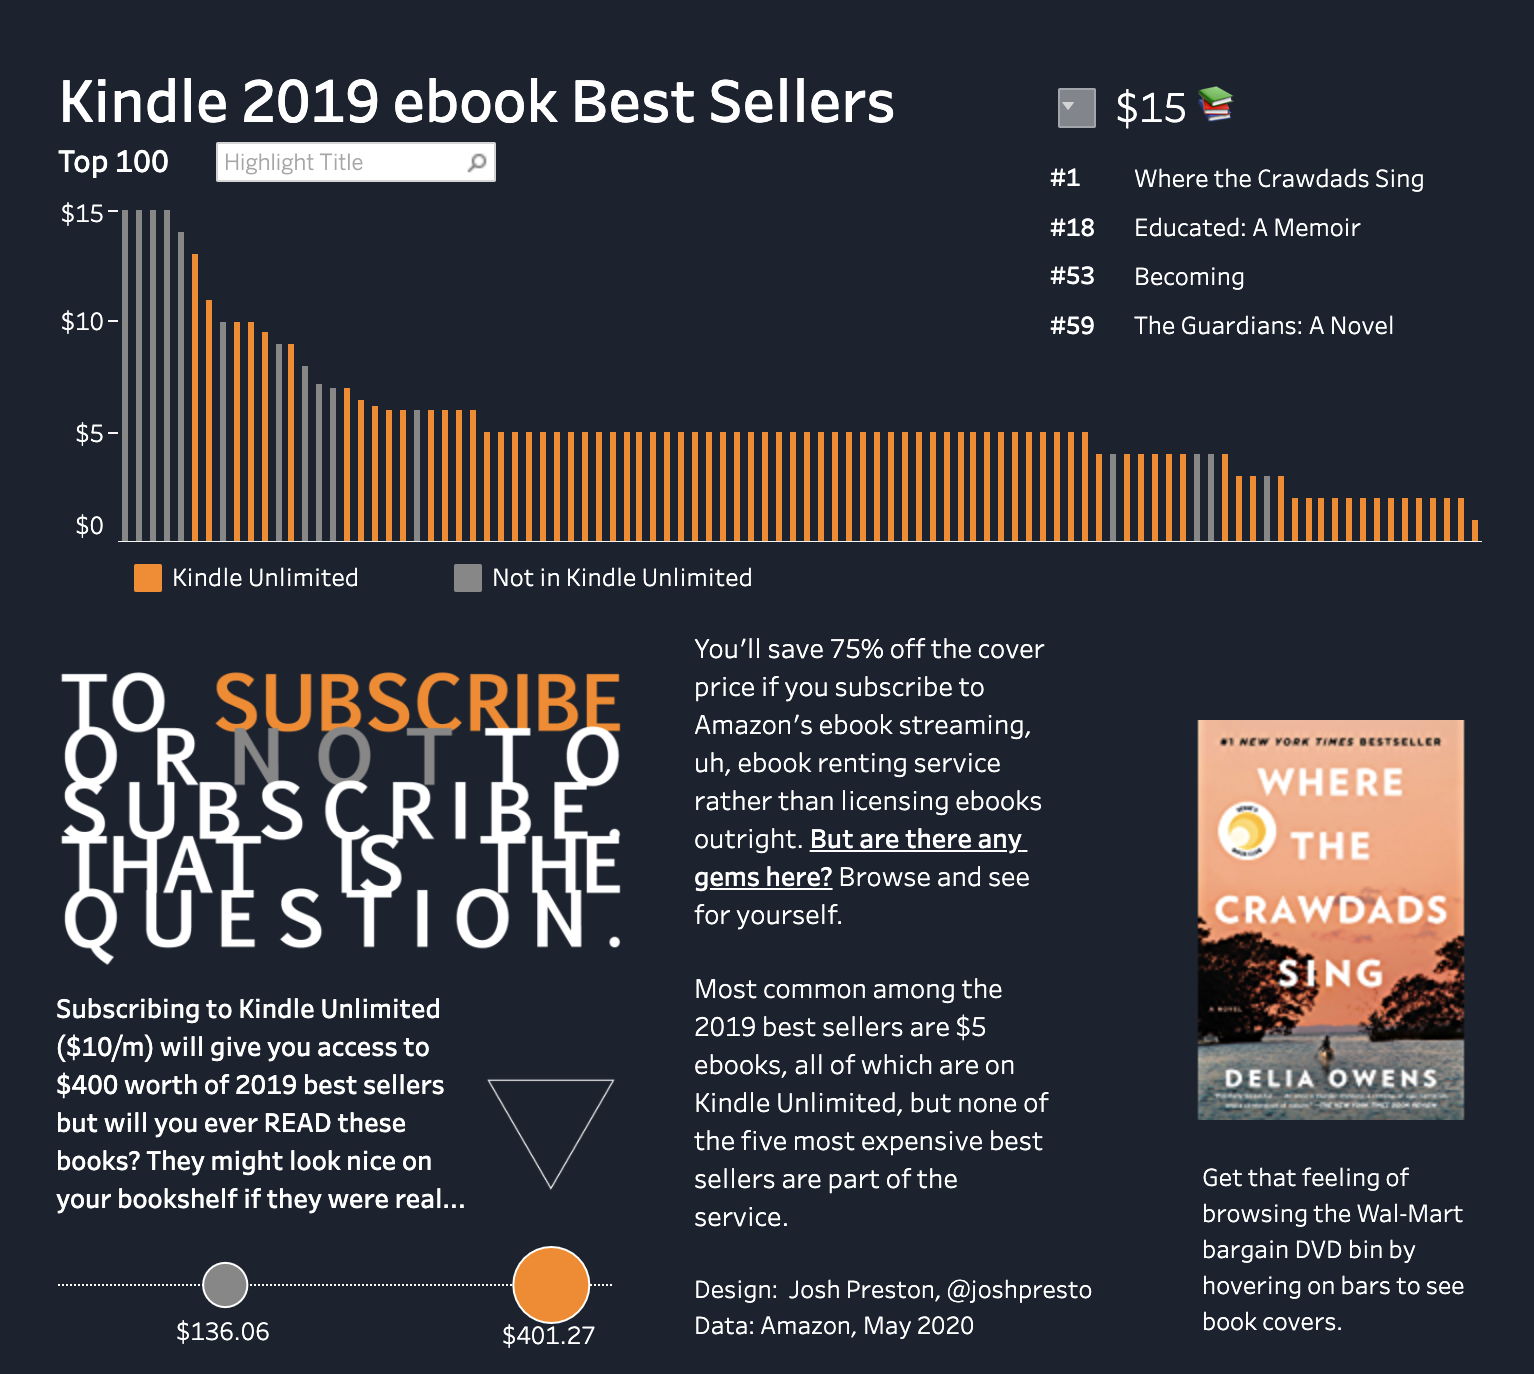 kindle 2019 best sellers